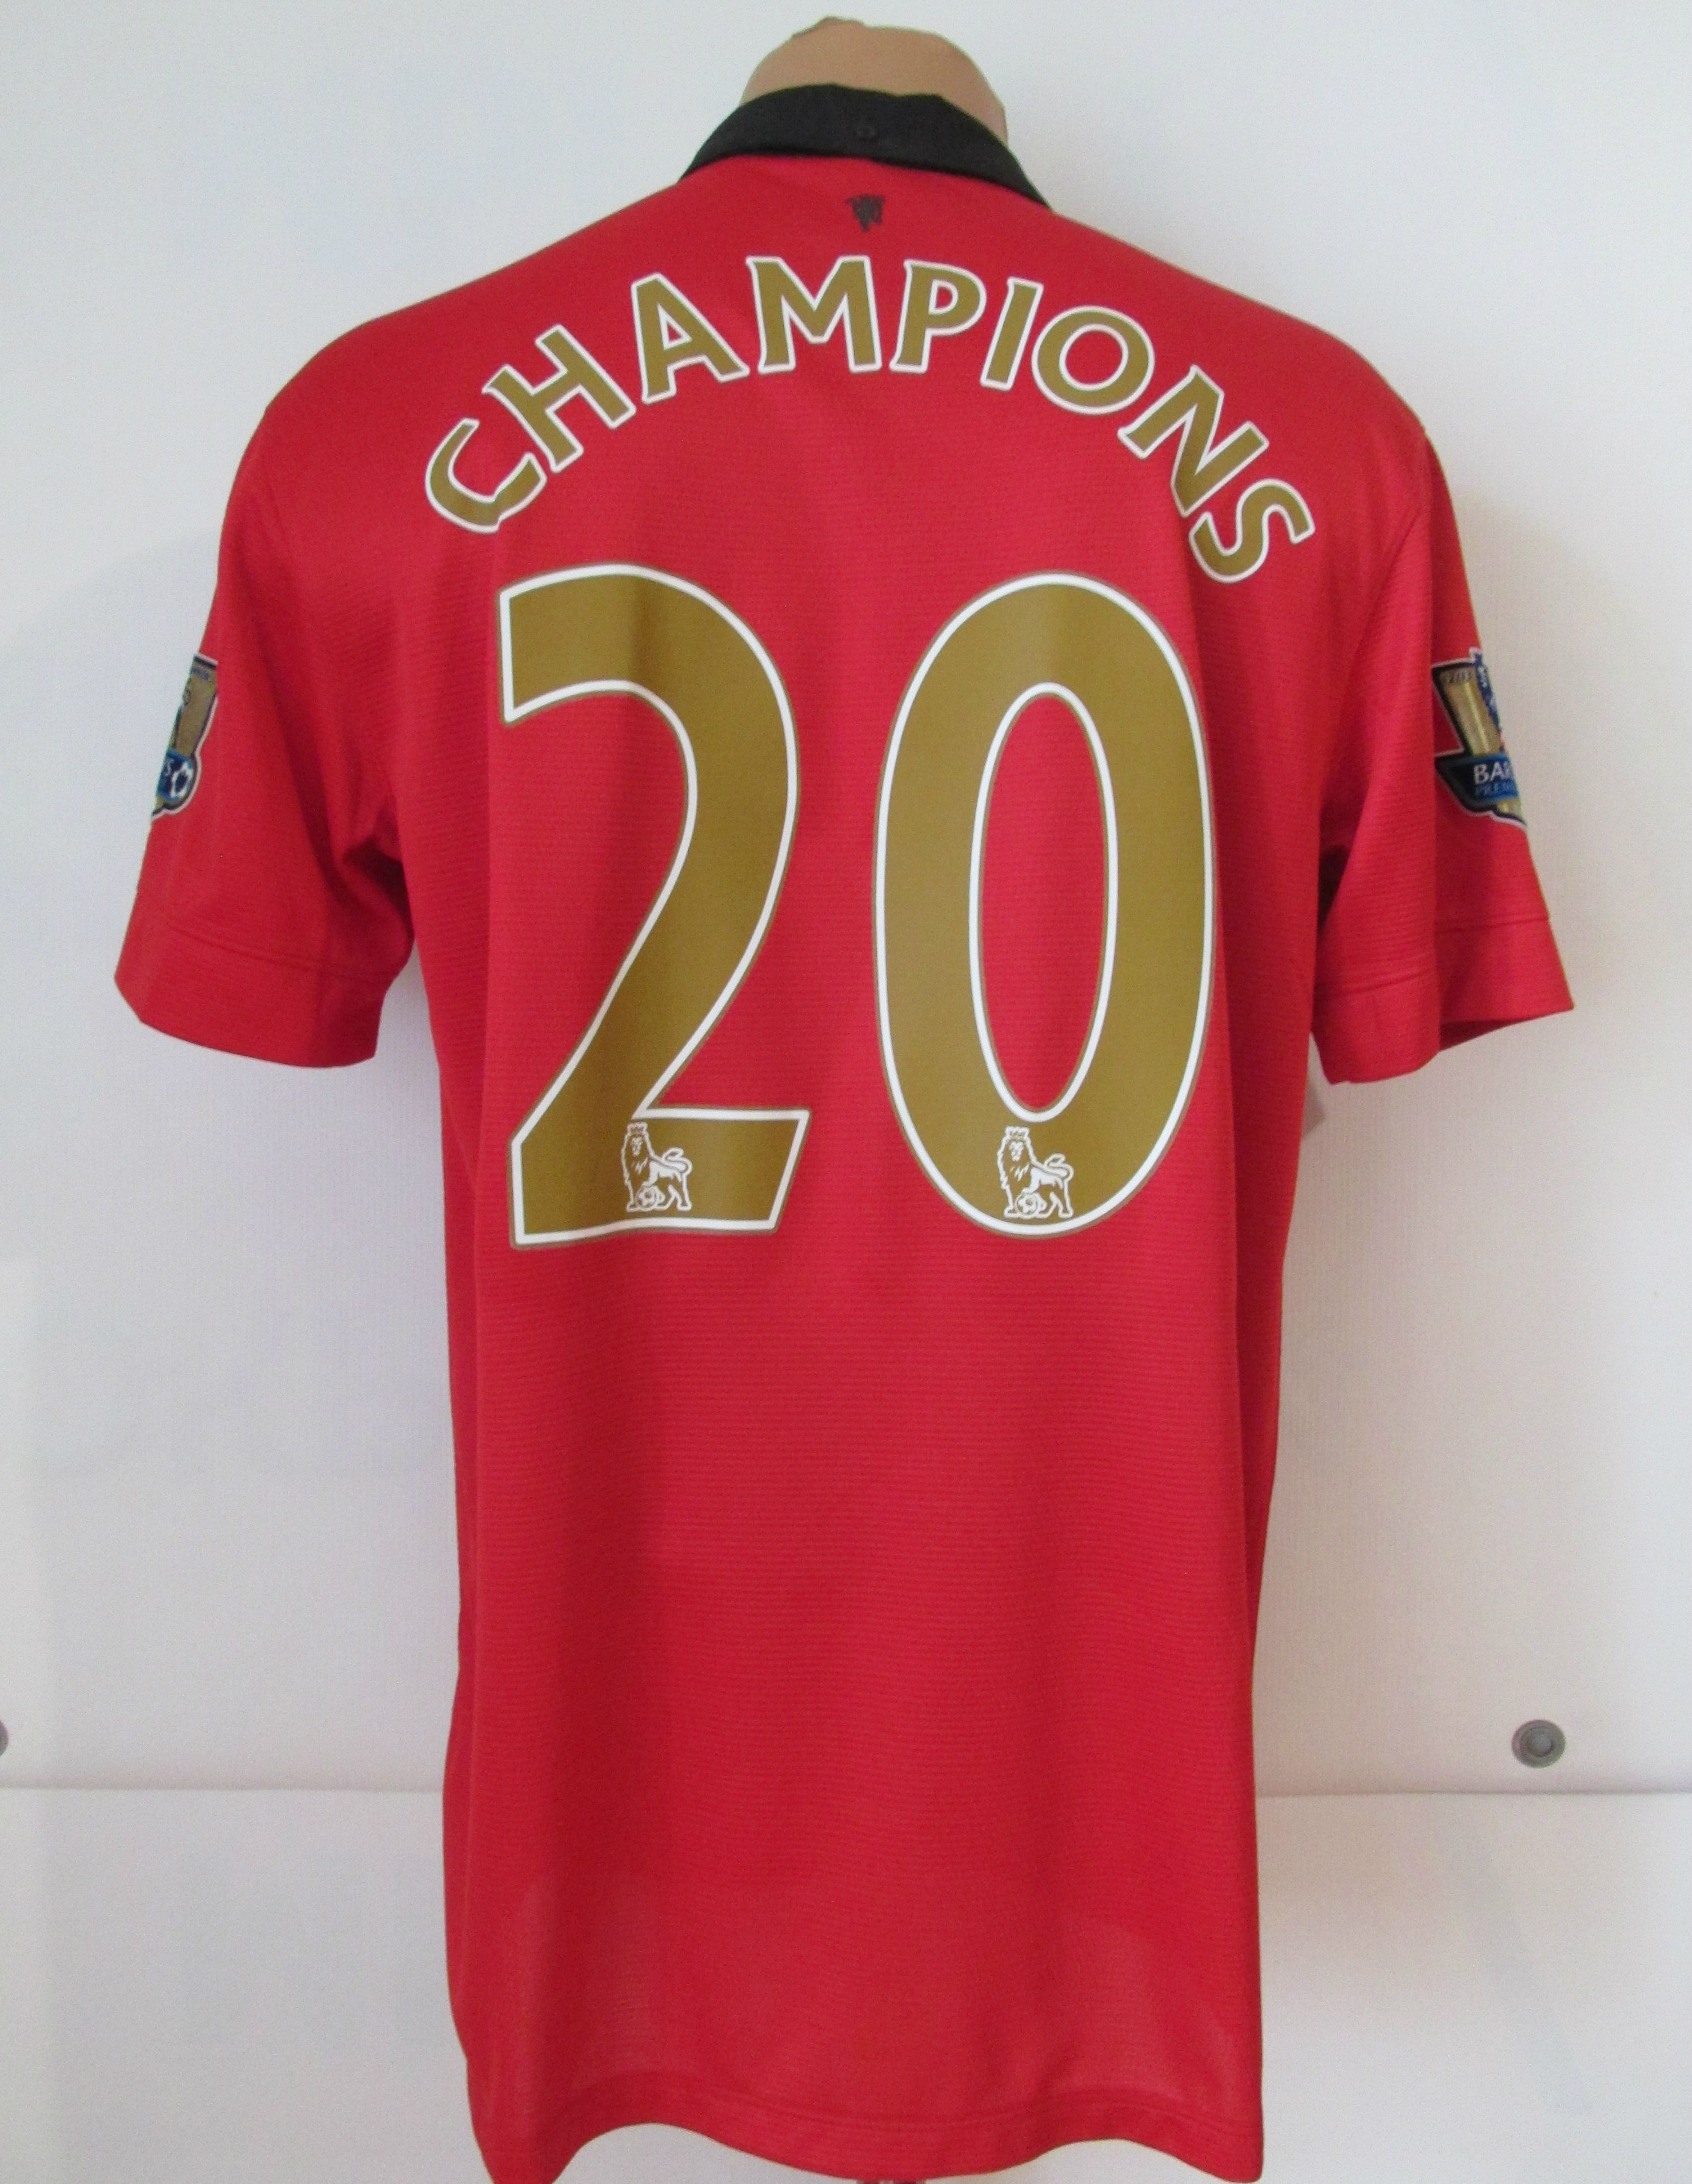 29465a51dc6 Manchester United 2013/2014 home champions football shirt by Nike ManUtd  MUFC PremierLeague soccer jersey #ManchesterUnited #MUFC #ManUnited  #champions ...